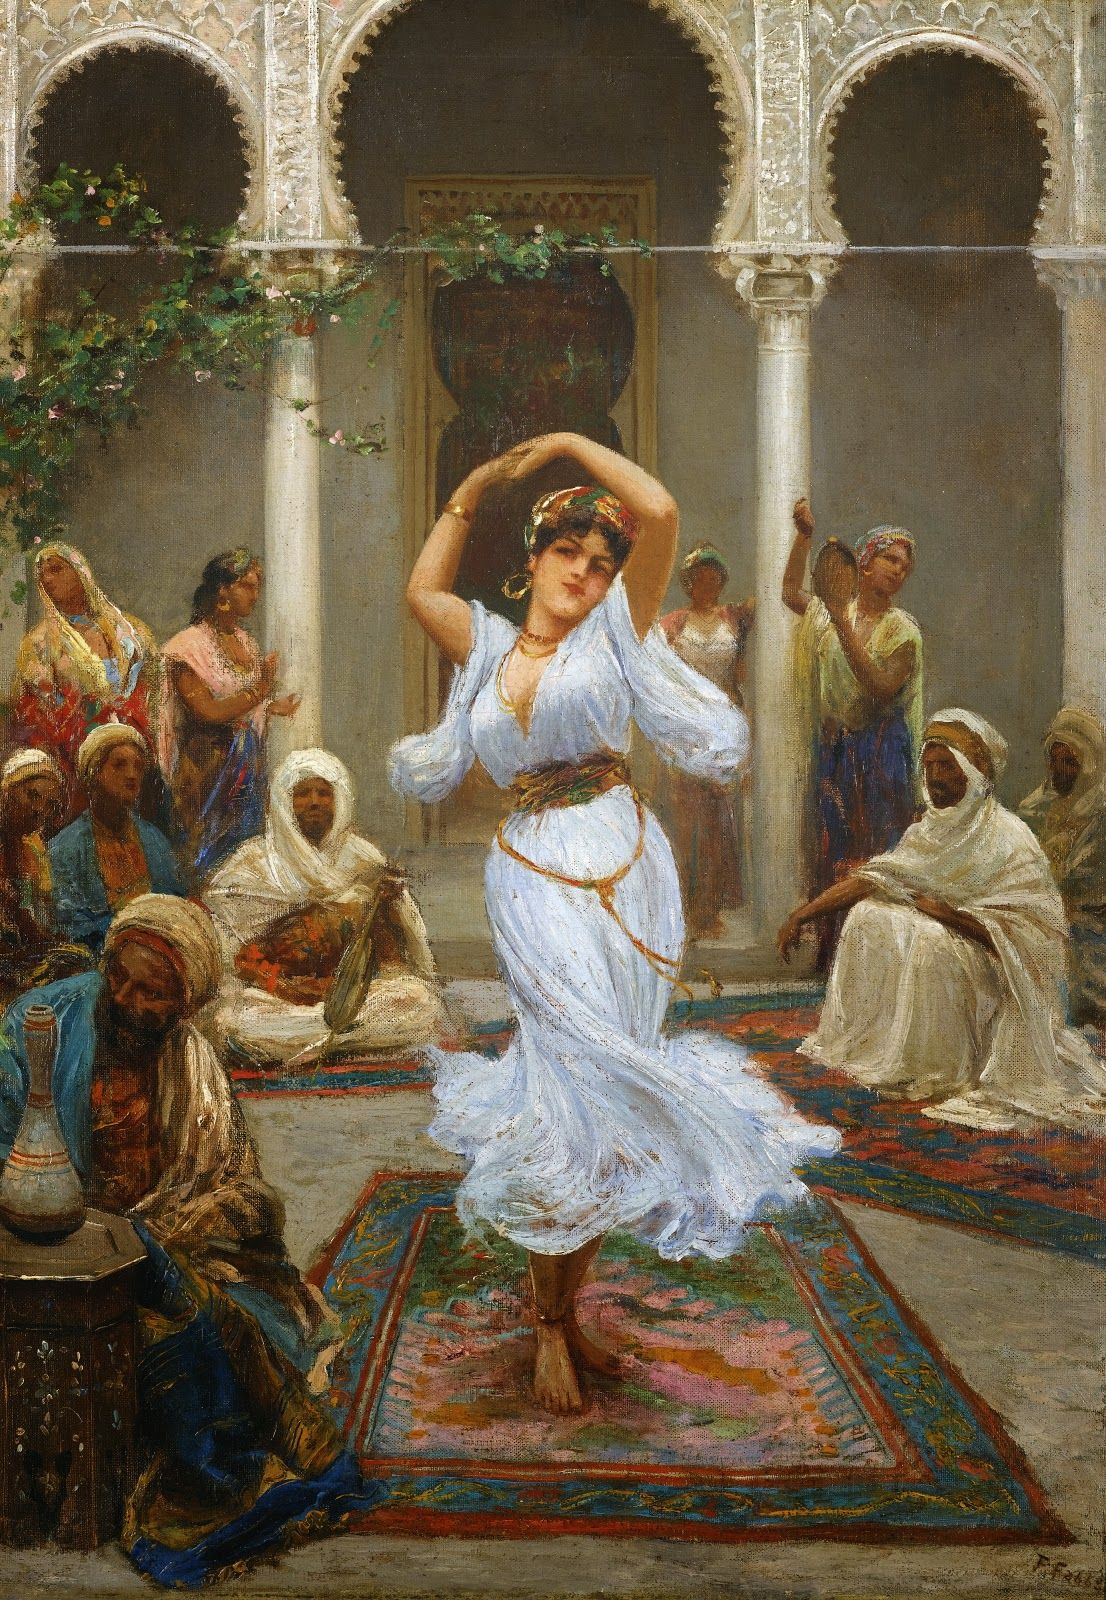 Fabio Fabbi ~ Orientalist painter is part of Art painting, Dance paintings, Classical art, Oriental art, Arabic art, Painting - Fabio Fabbi [18611906] one of the most famous and commercially successful Italian artists of the Orientalists  Fabio Fabbi was born in Bologna, Italy in 1861  As a young man, he enrolled at the Academia Di Belle Art in Florence and studied sculpture and painting in the 1880s, winning prizes in both categories  After his studies, he traveled to Paris, Munich, and finally Egypt  Upon his return to Italy, he dedicated himself solely to painting and was honored with the distinction of professorship at the Academia